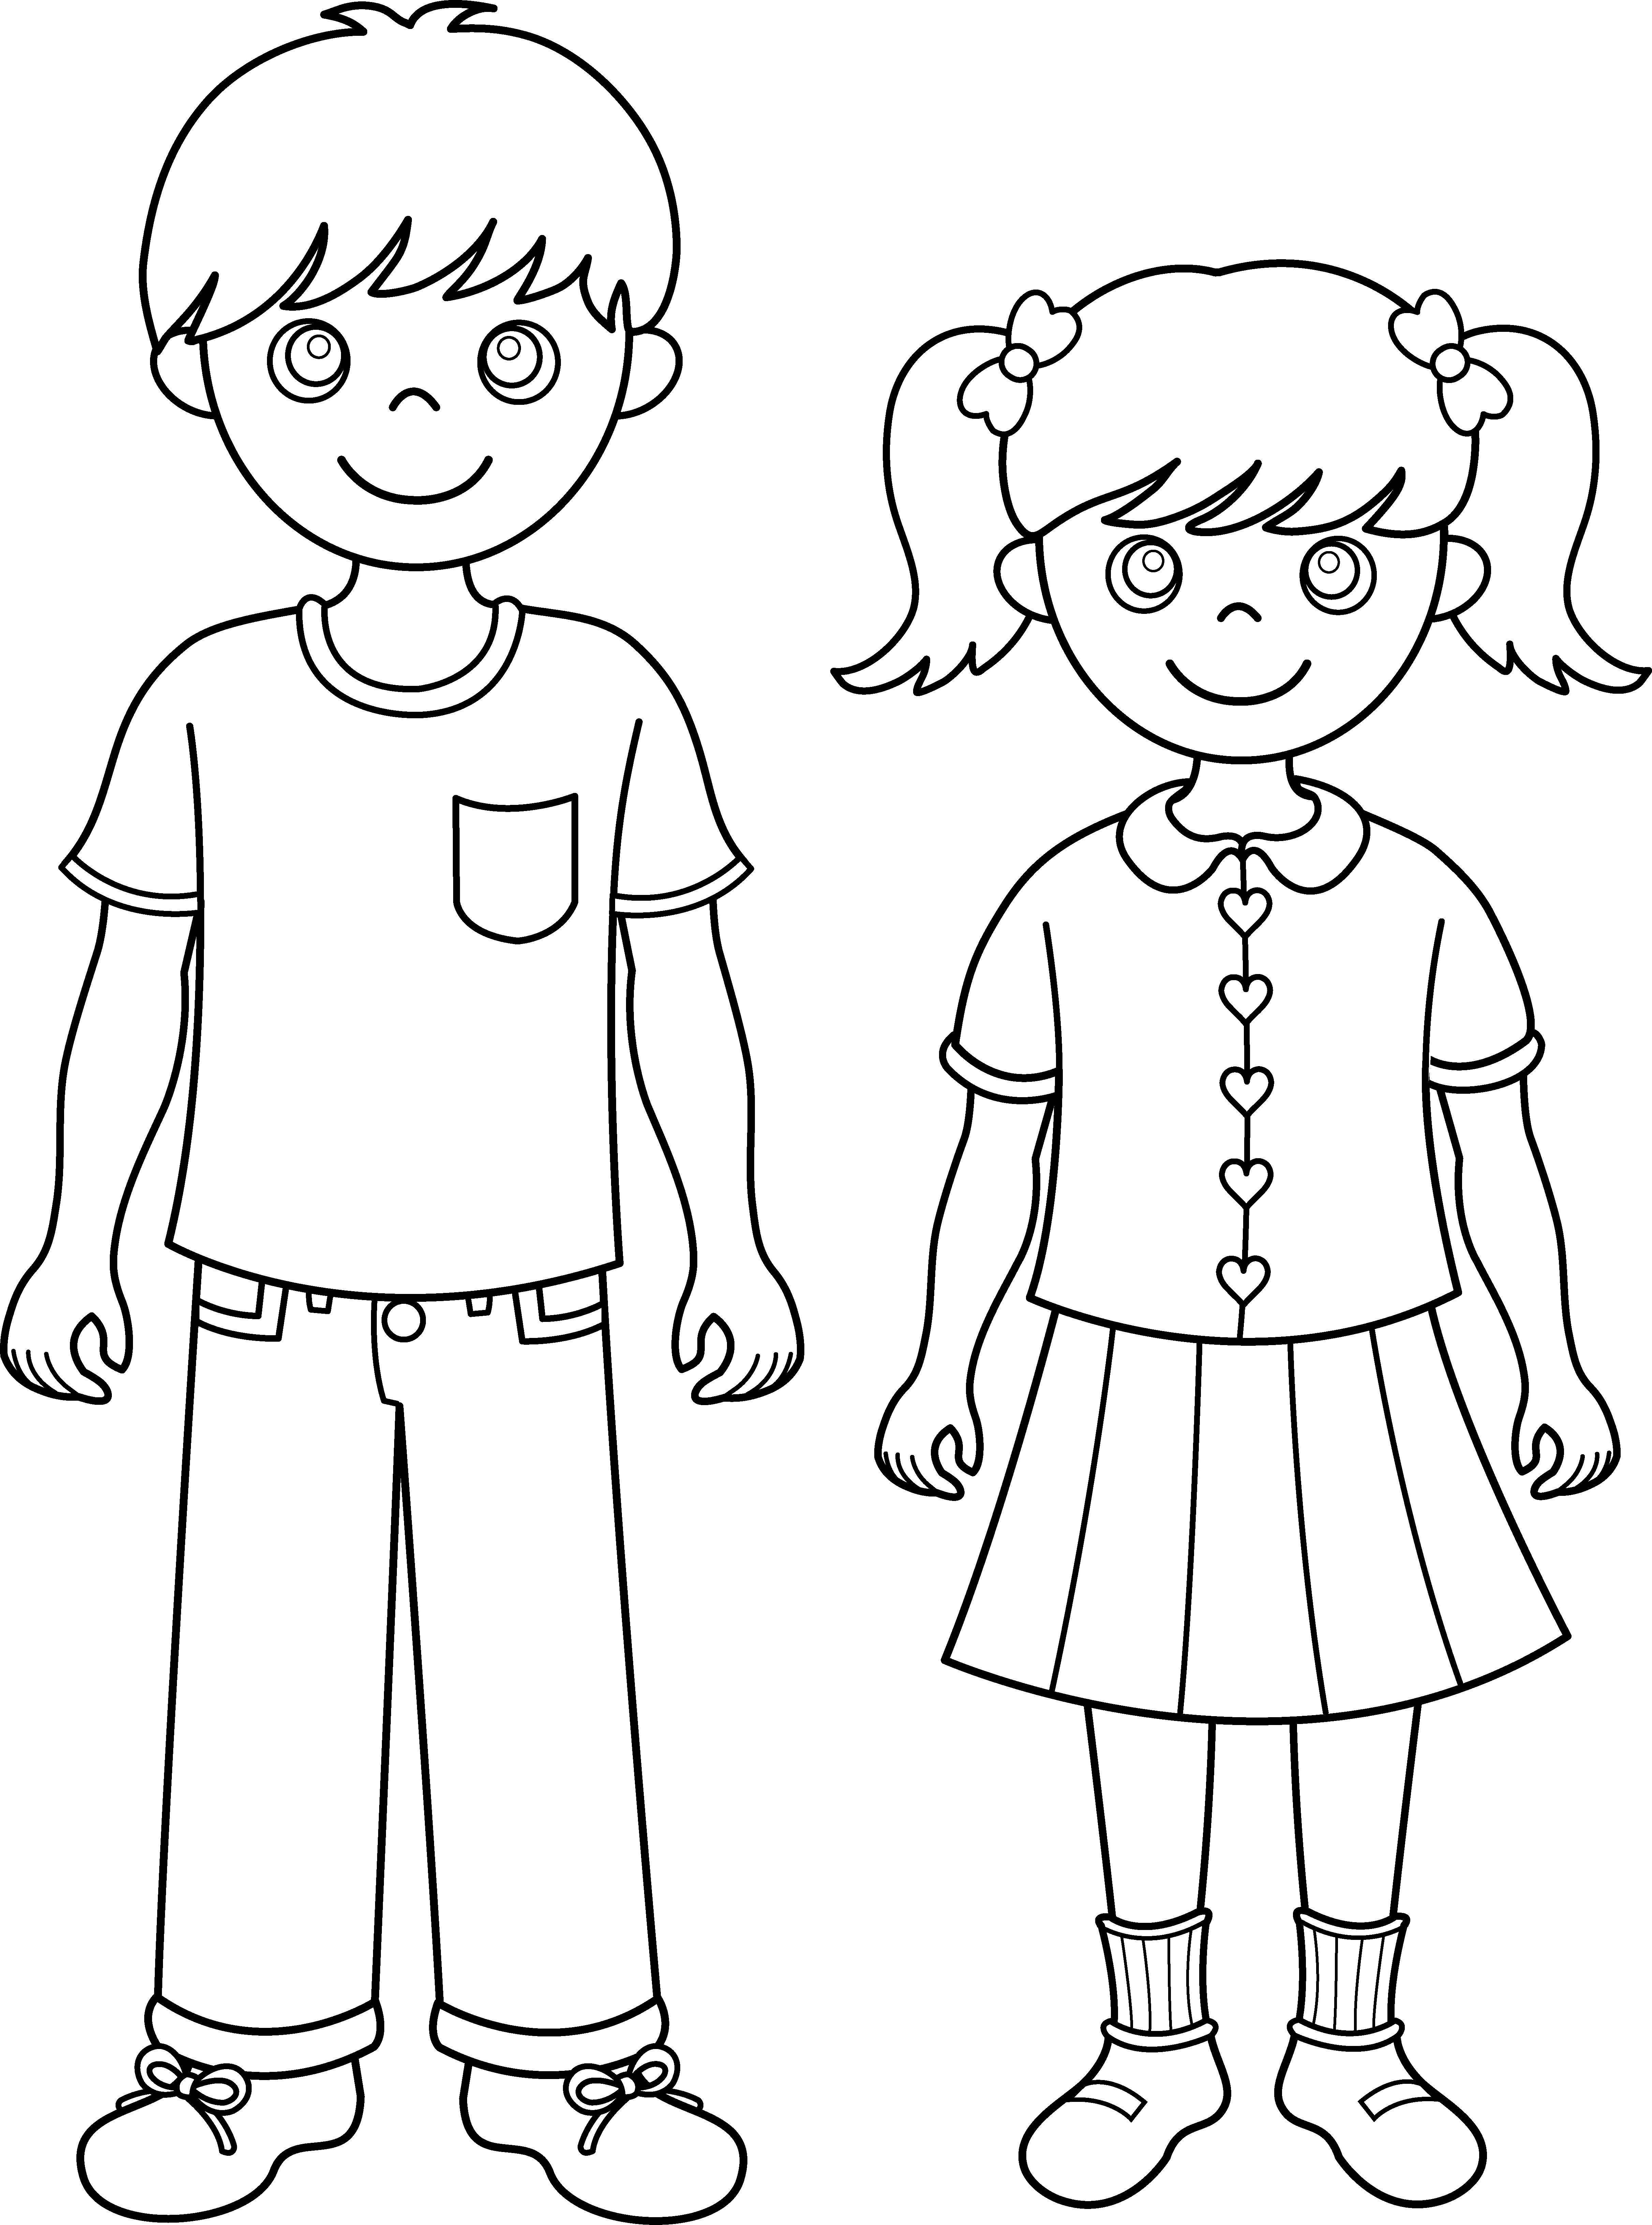 Clip Arts Related To : Sisters clipart black and white - Siblings PNG Black And White